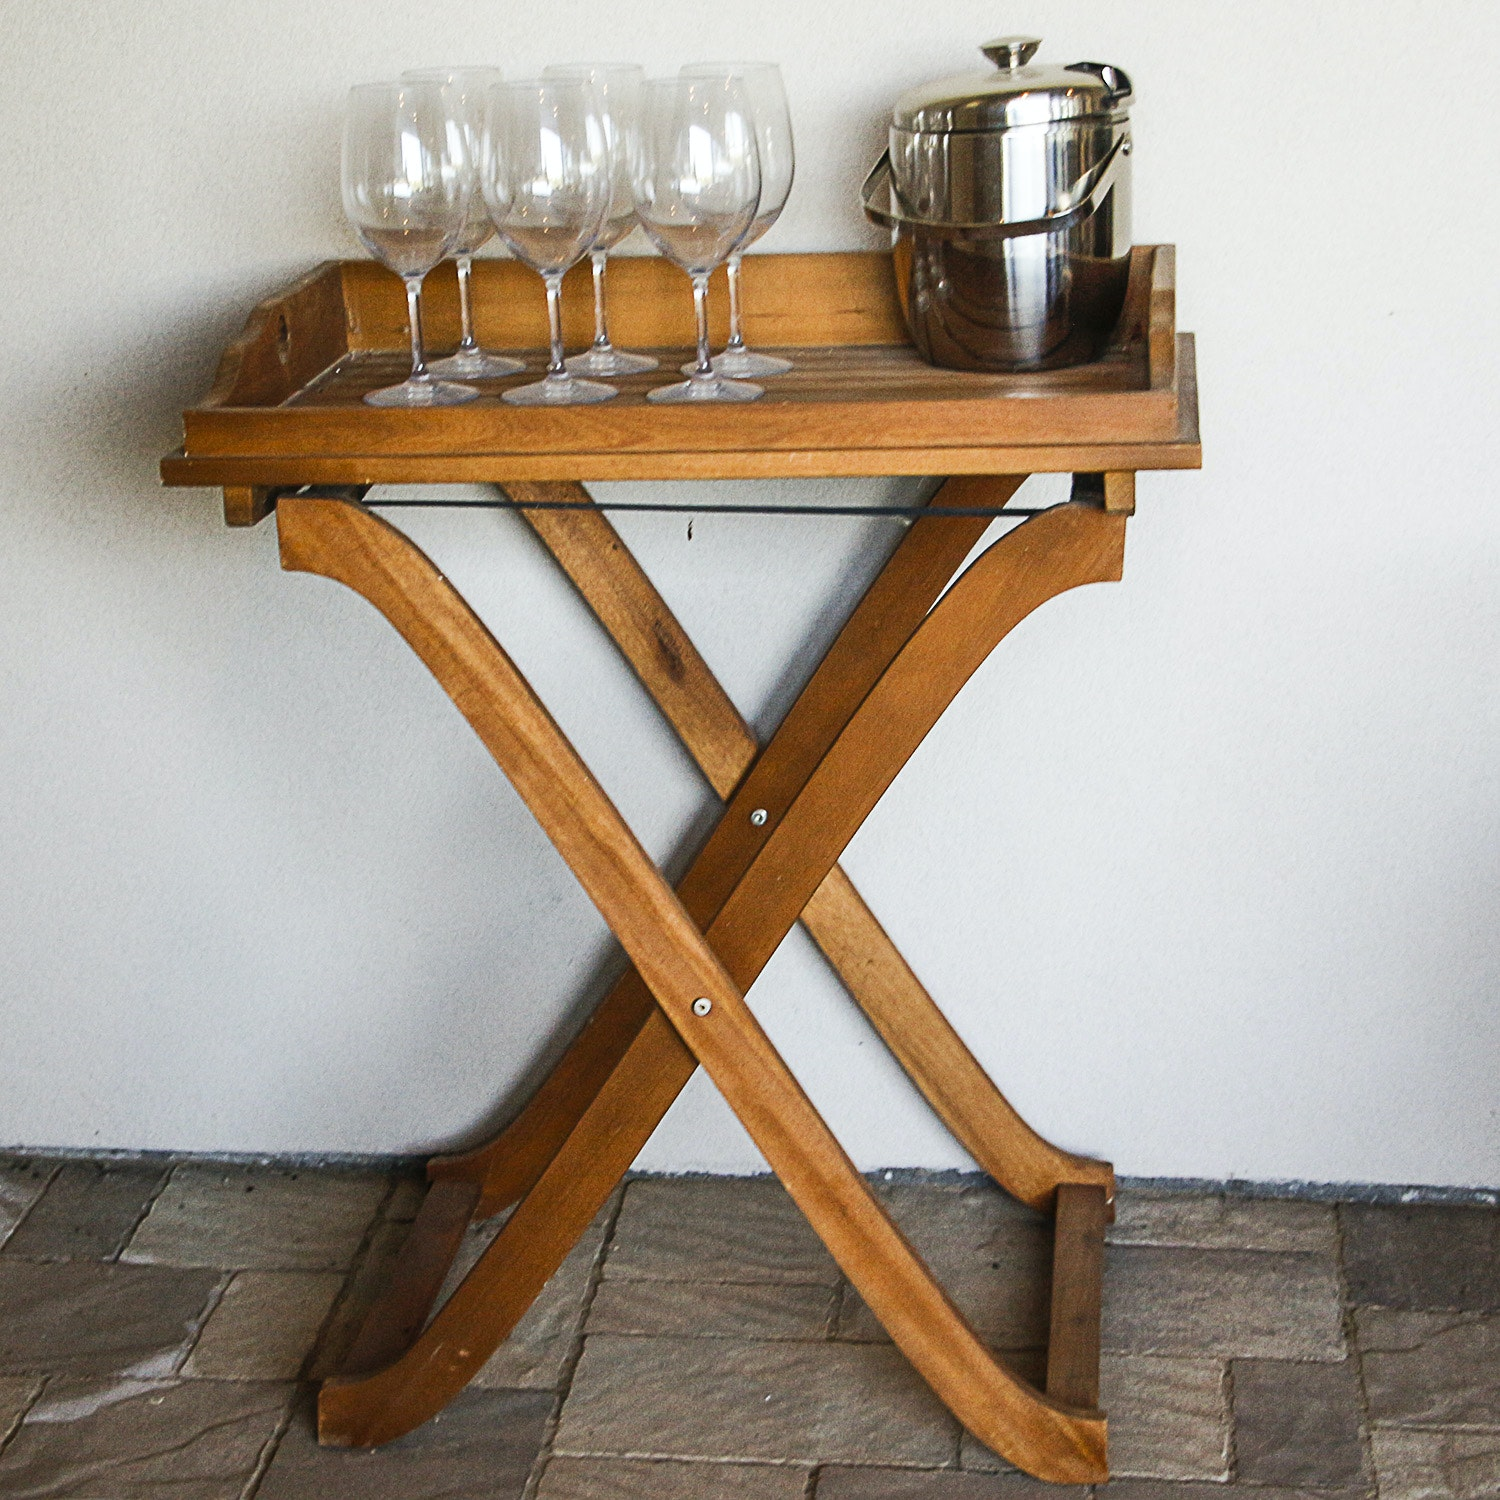 Wooden Foldable Serving Tray with Wine Glasses and Metal Ice Bucket